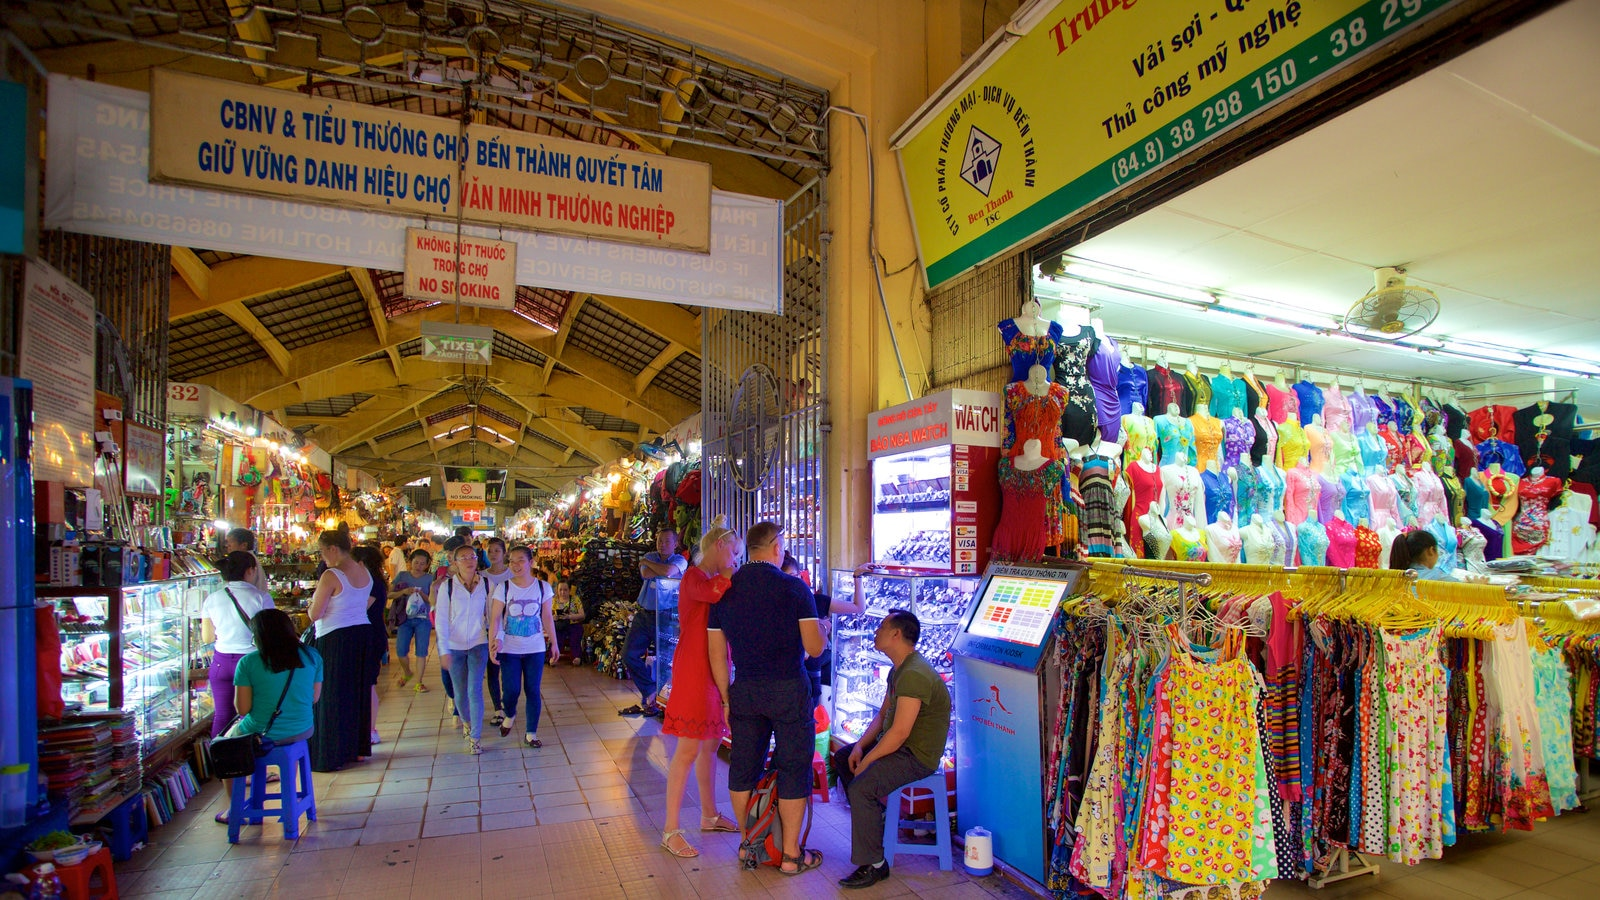 Ben Thanh Market featuring interior views, shopping and markets